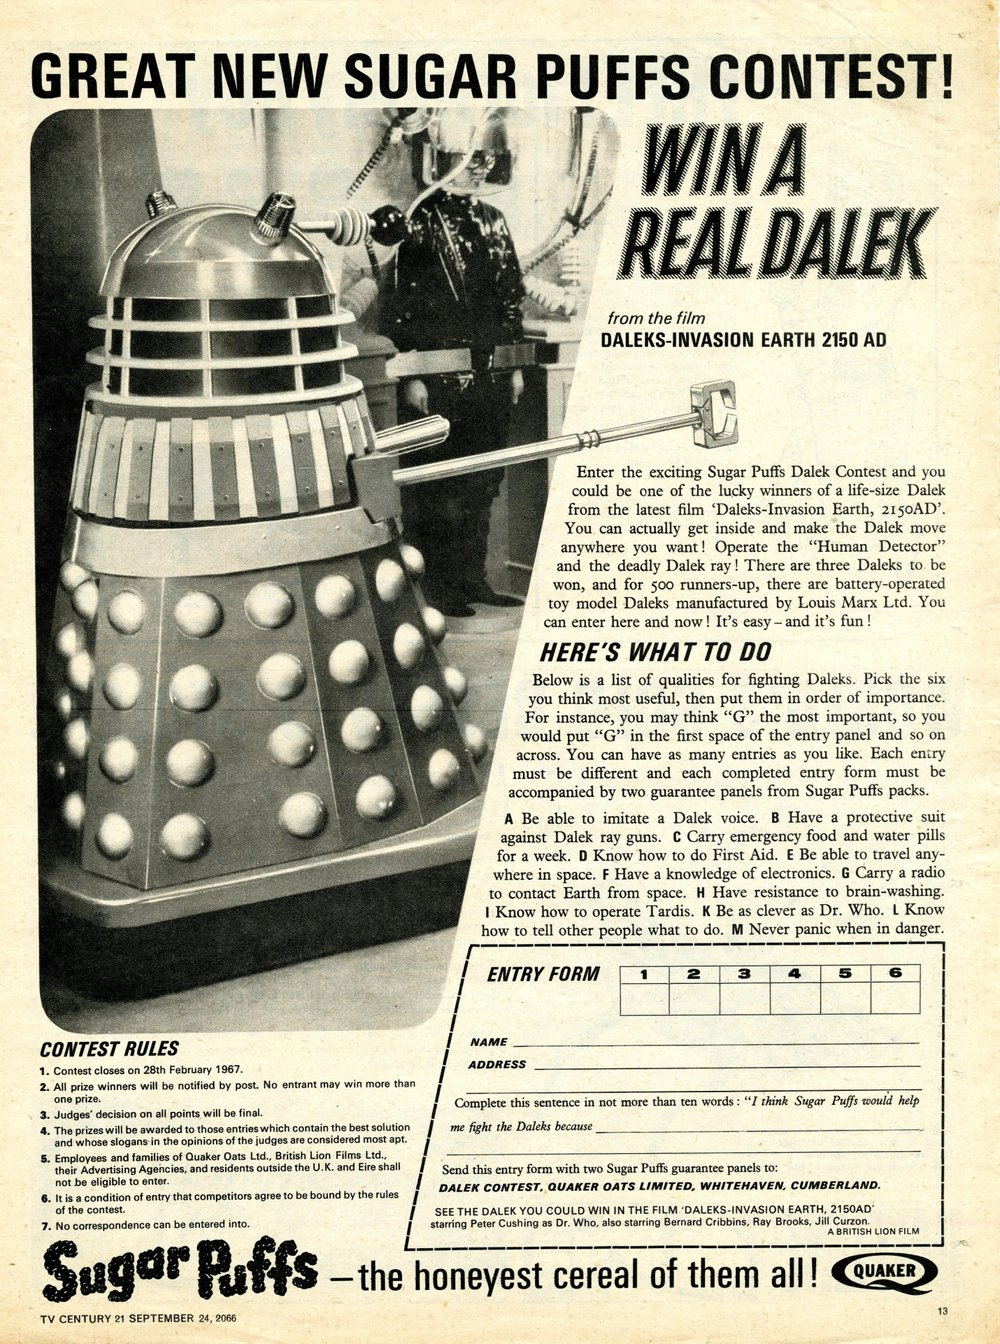 Sugar Puffs Win a Dalek competition ad in TV Century 21, no. 88, 24 September 1966